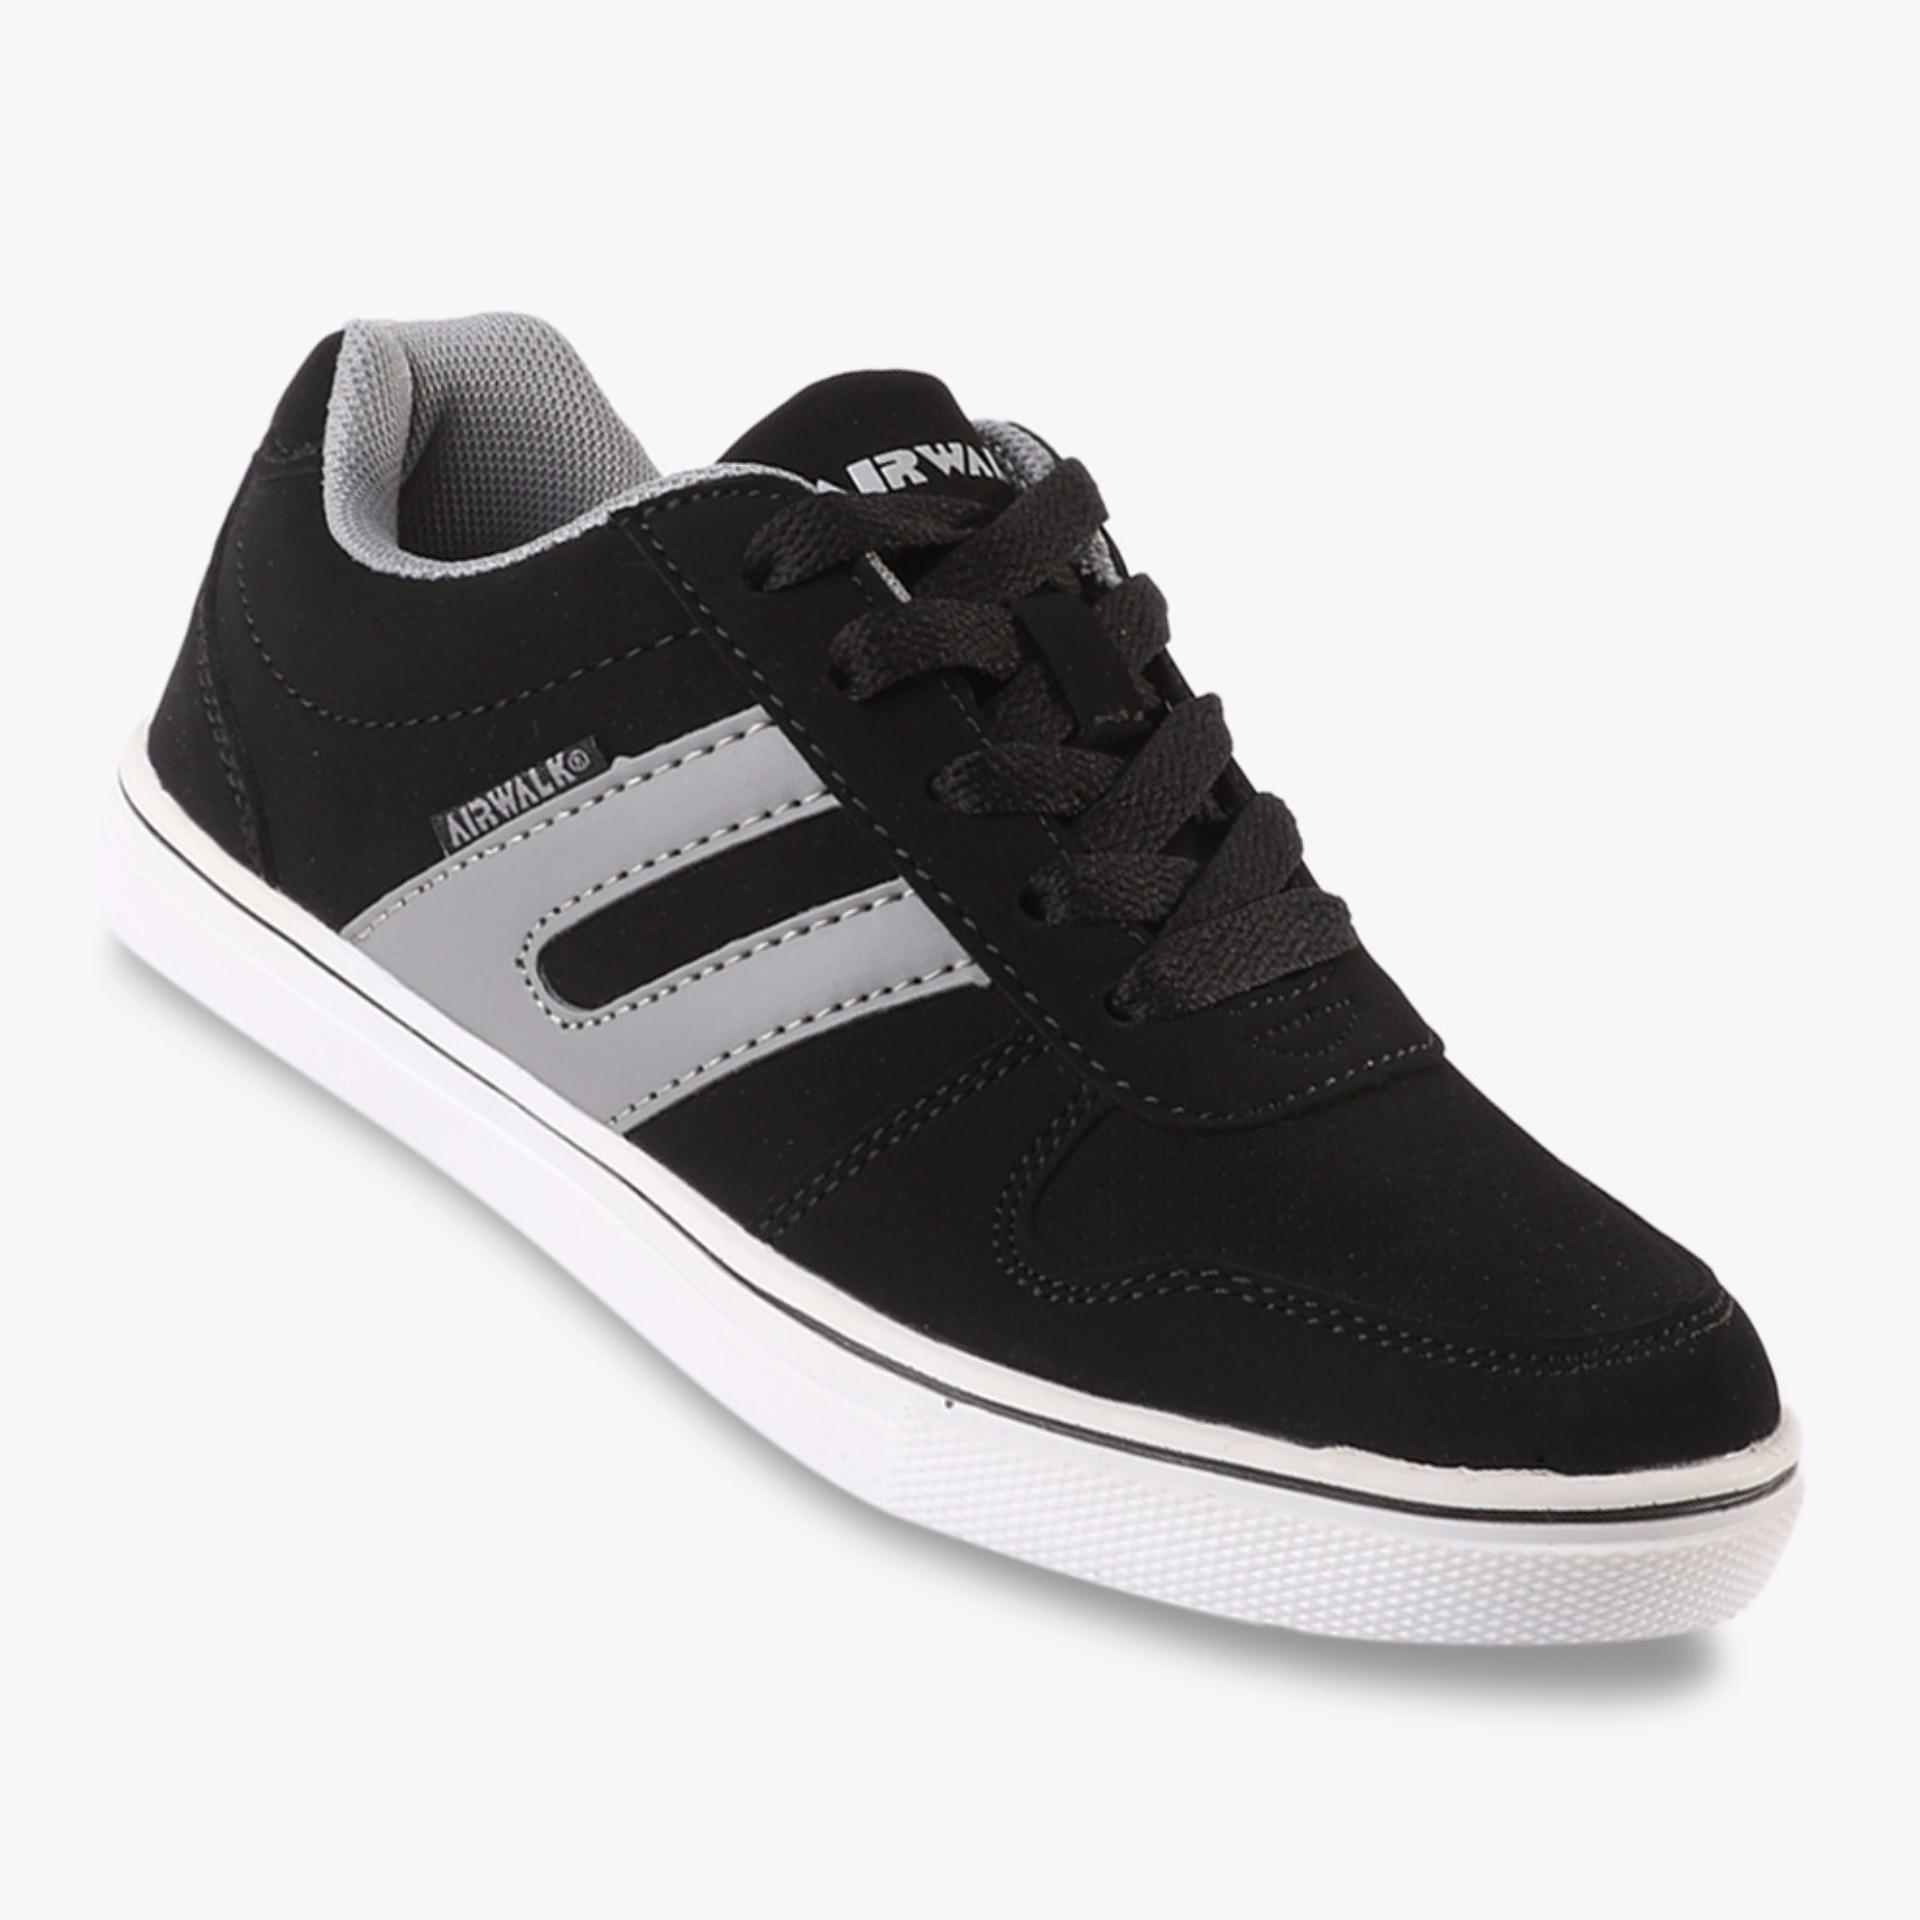 Harga Airwalk Jaky Jr Boys Sneakers Shoes Hitam Yang Murah